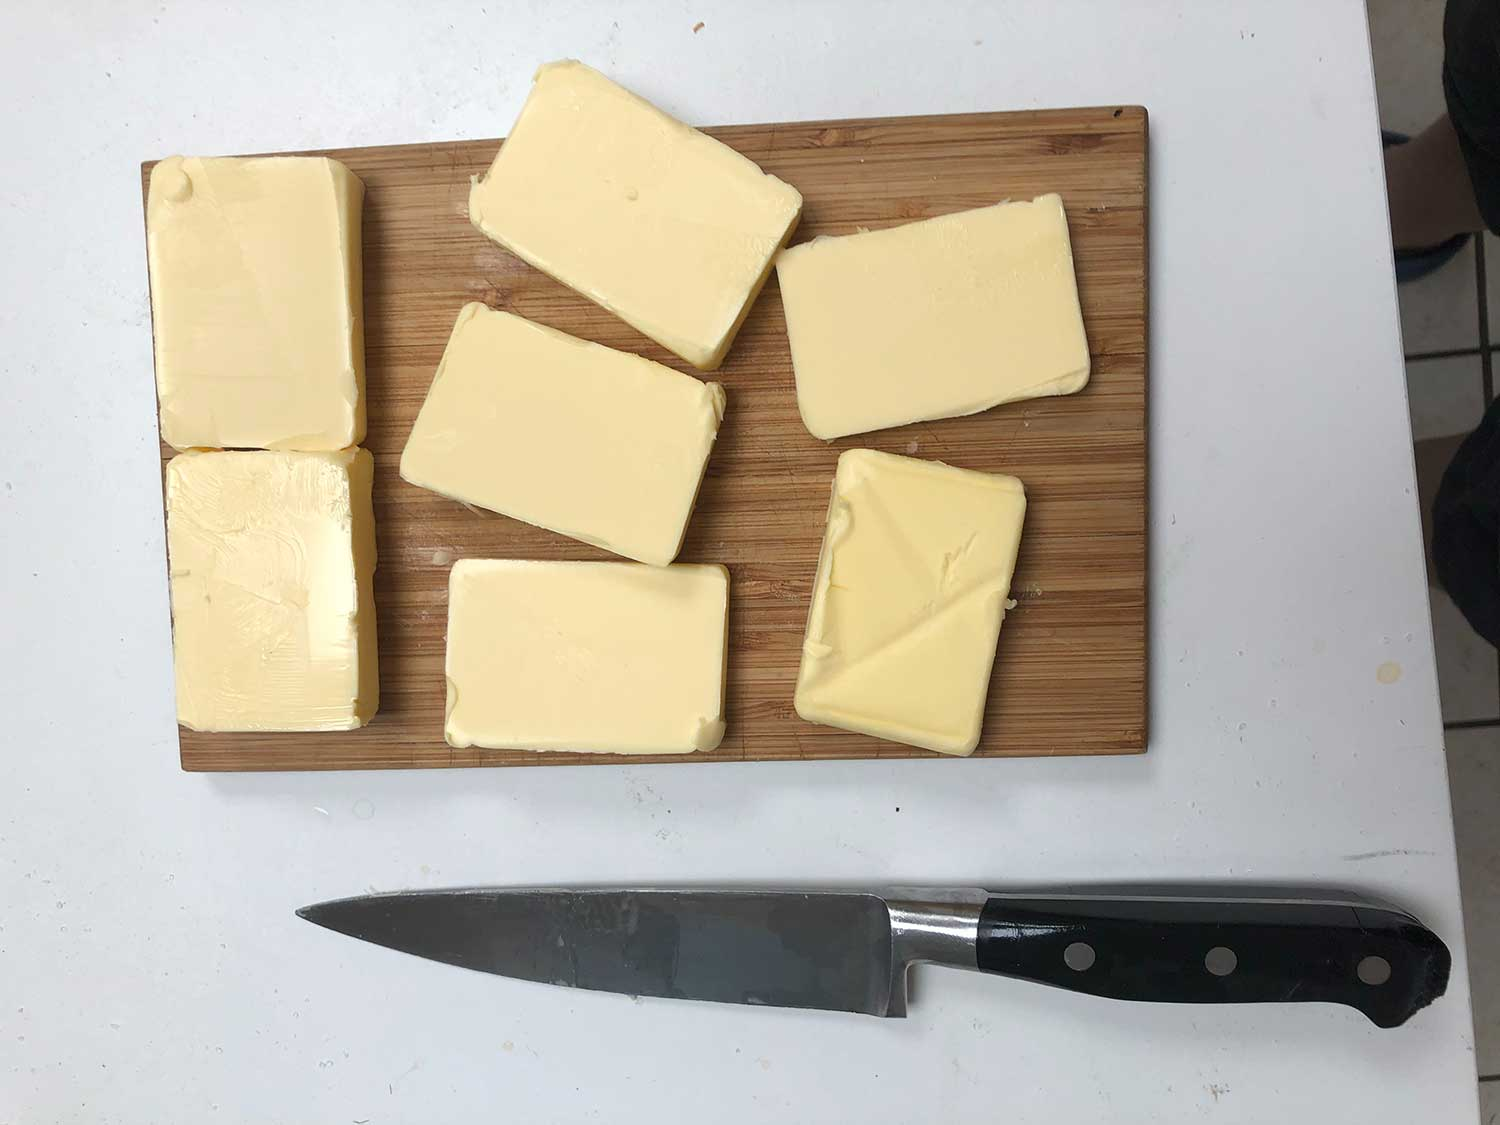 Knife with cheese on cutting board.